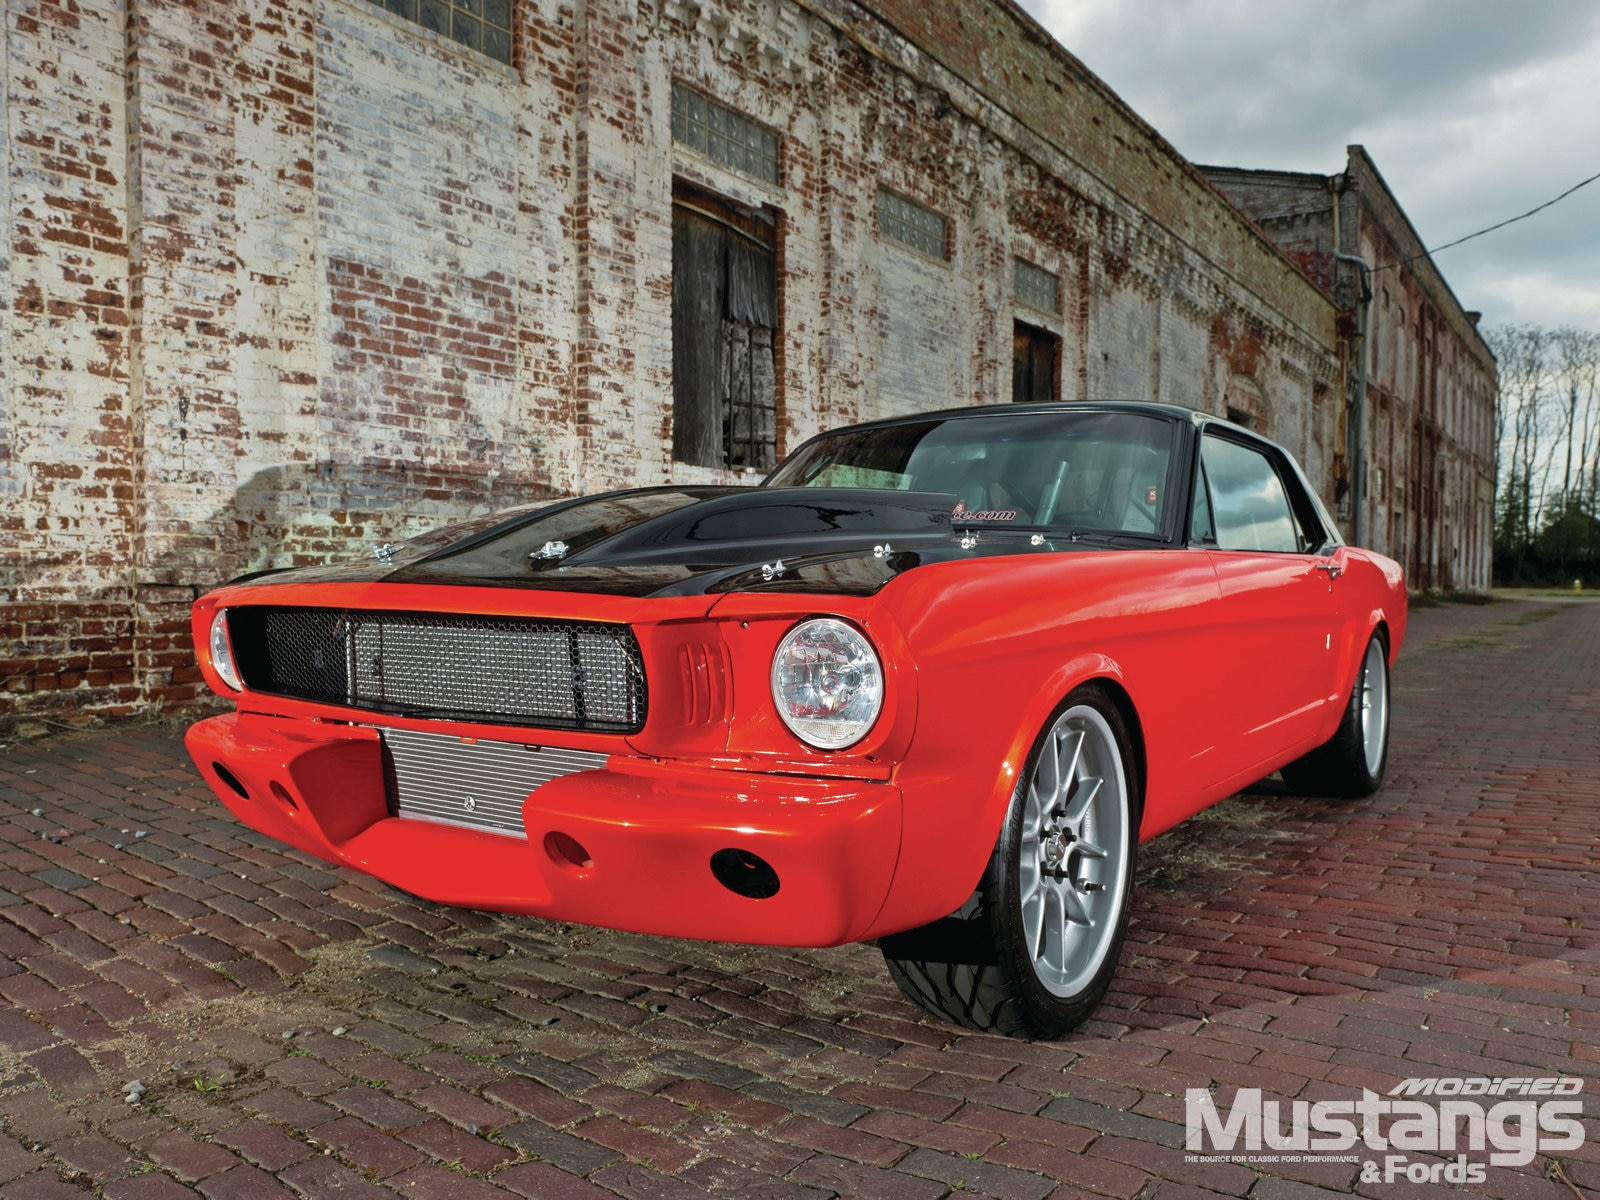 Mdmp 1209 01 1966 Ford Mustang Turbo Lover